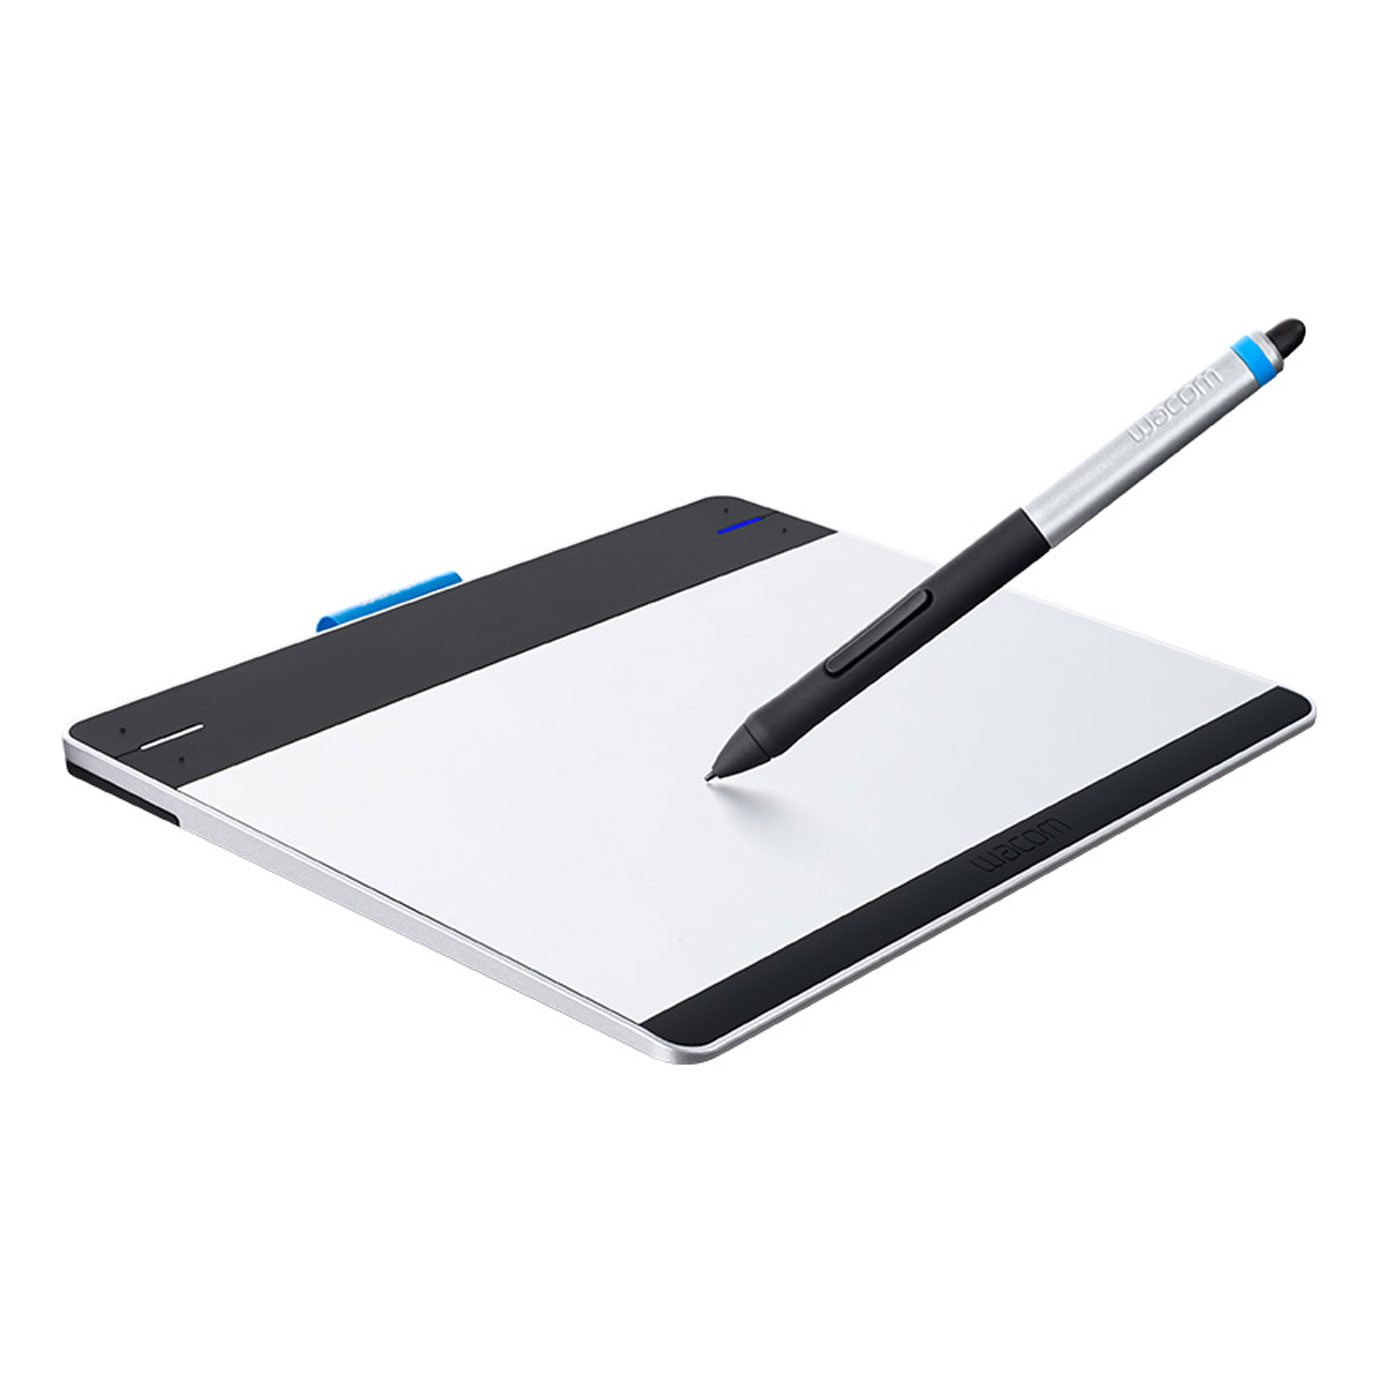 WACOM • Tablet • 99 USD